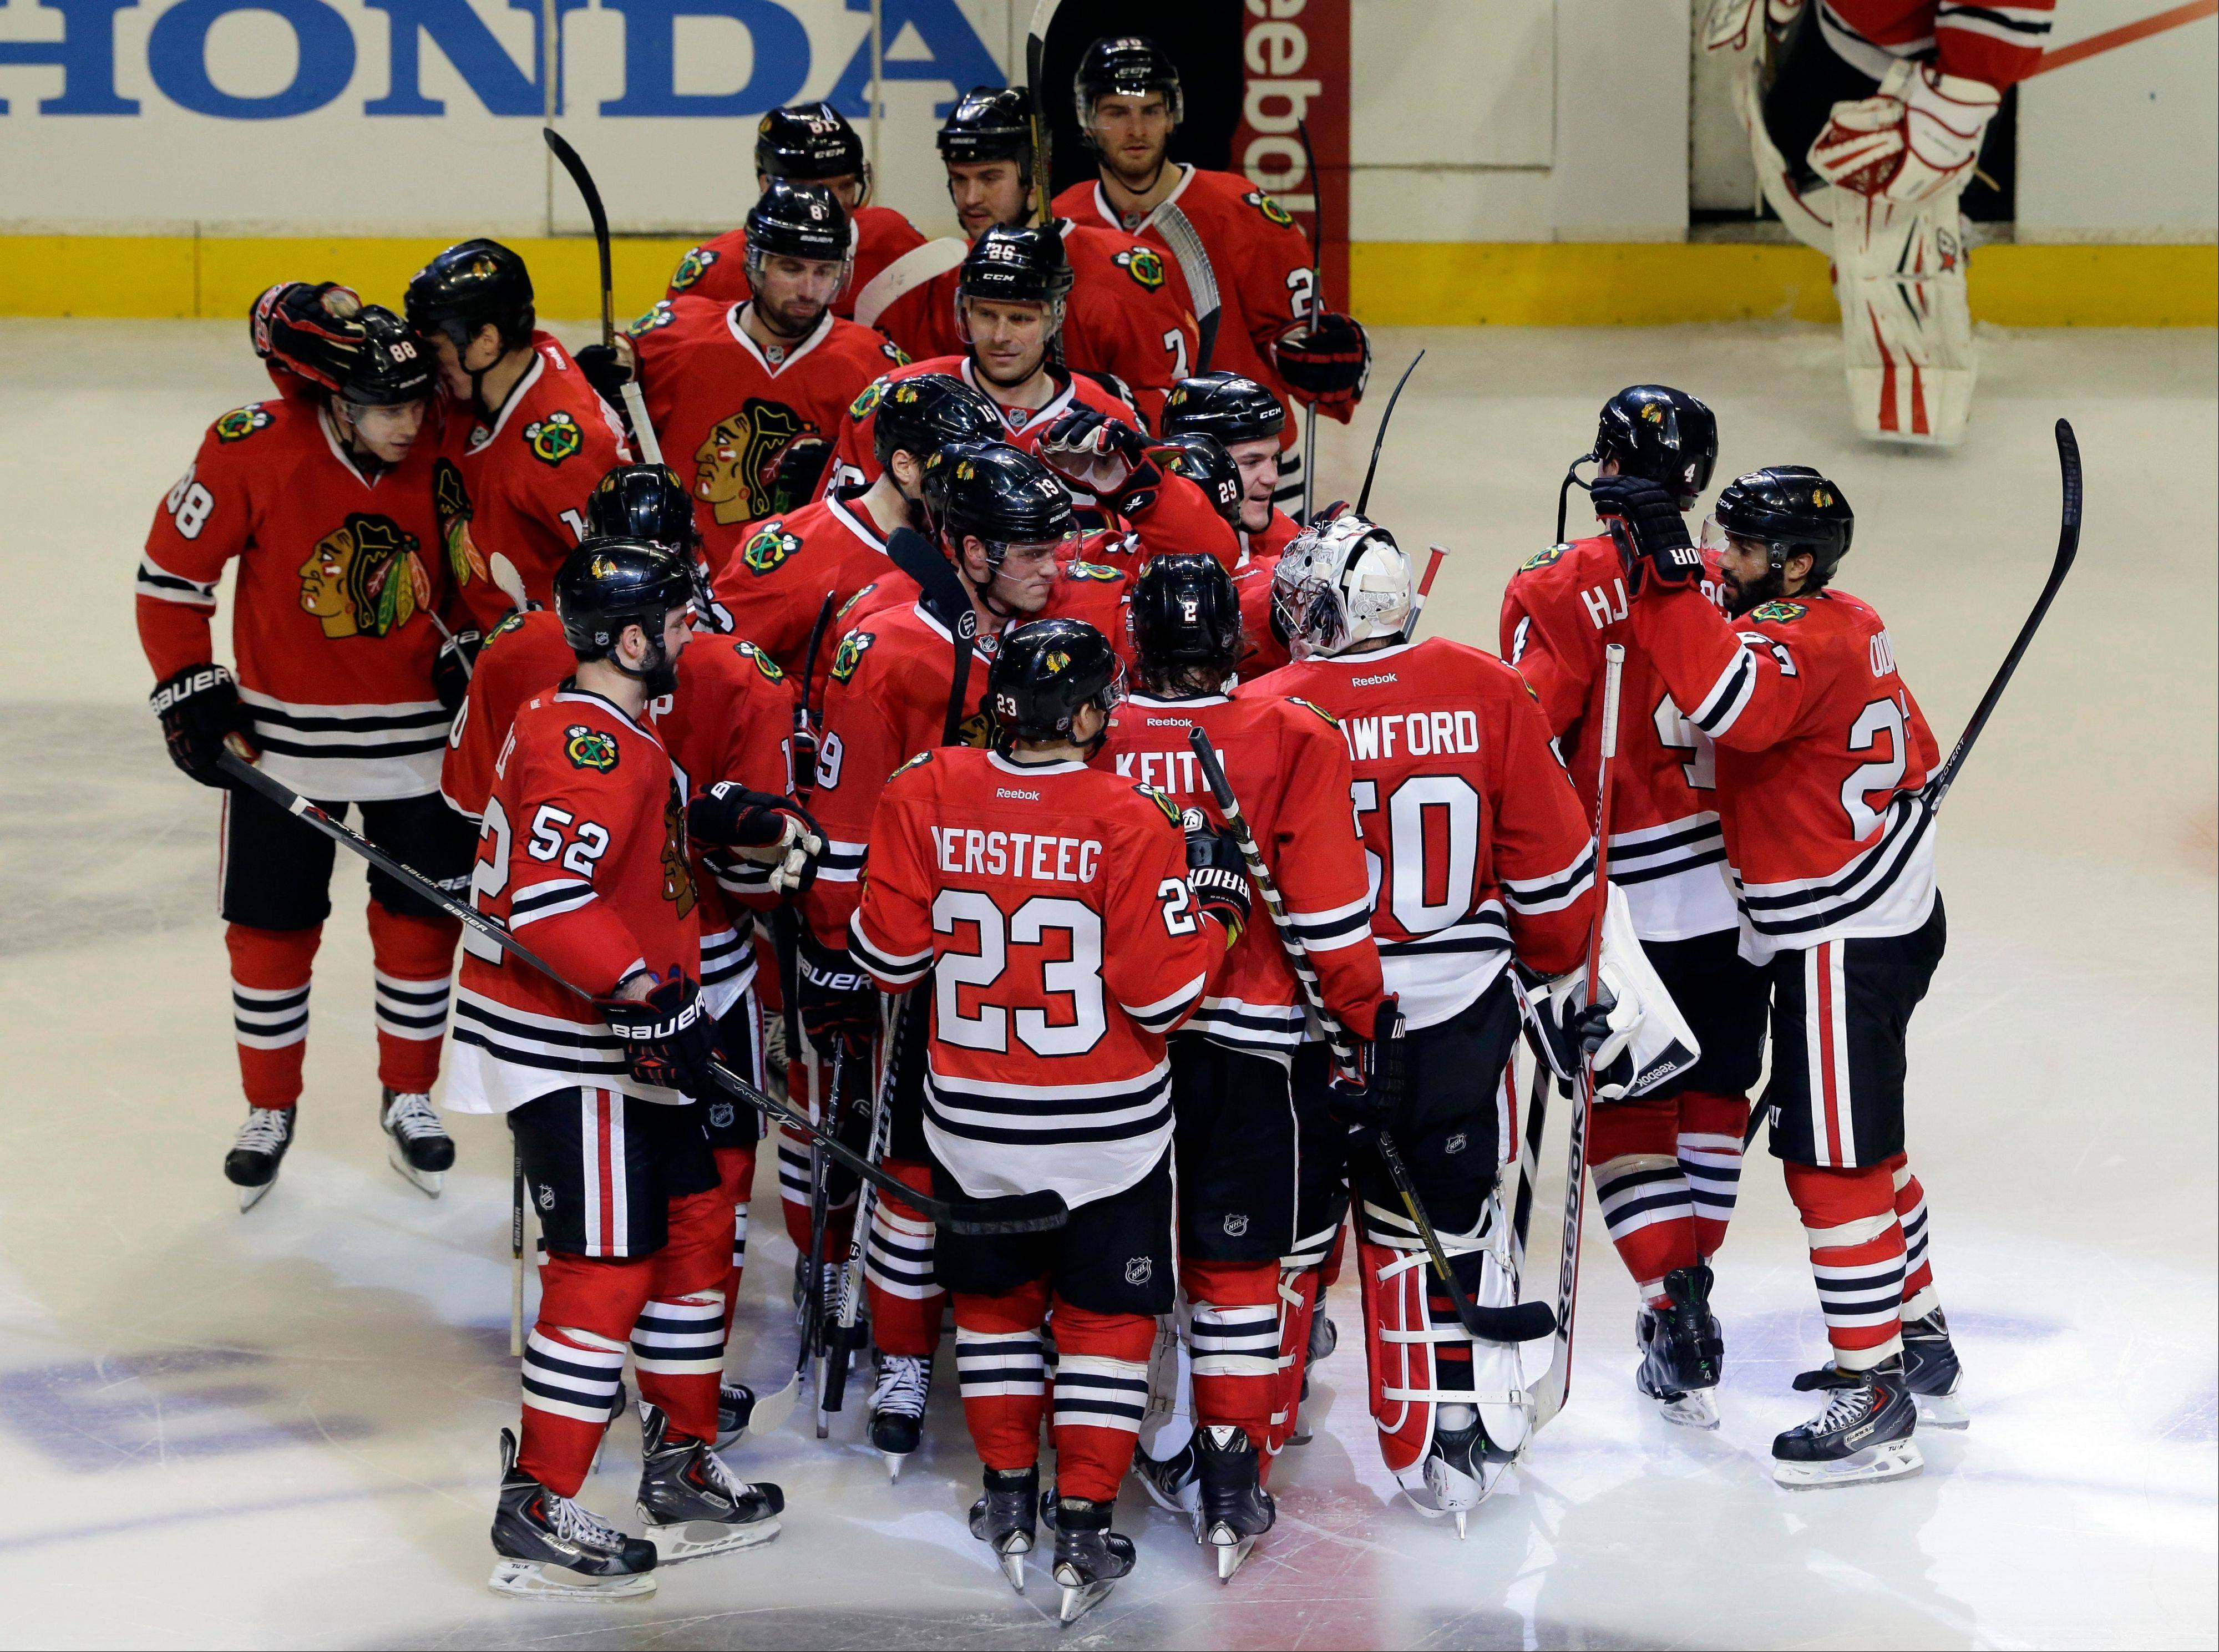 Goalie Corey Crawford and the Blackhawks celebrate after their 3-2 victory in a shootout against the Bruins on Sunday at the United Center.